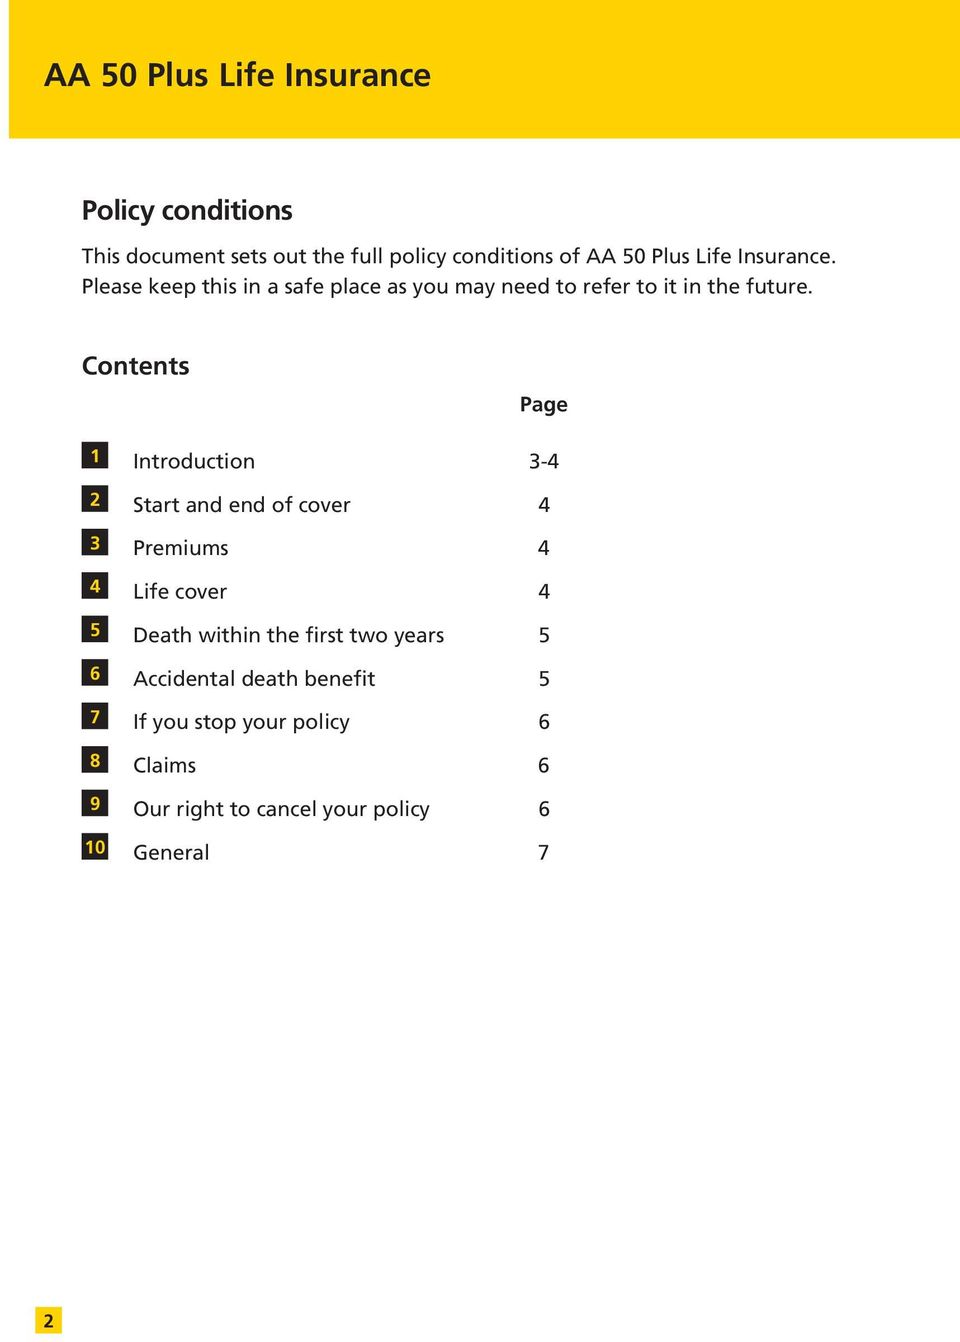 Contents Page 1 Introduction 3-4 2 Start and end of cover 4 3 Premiums 4 4 Life cover 4 5 Death within the